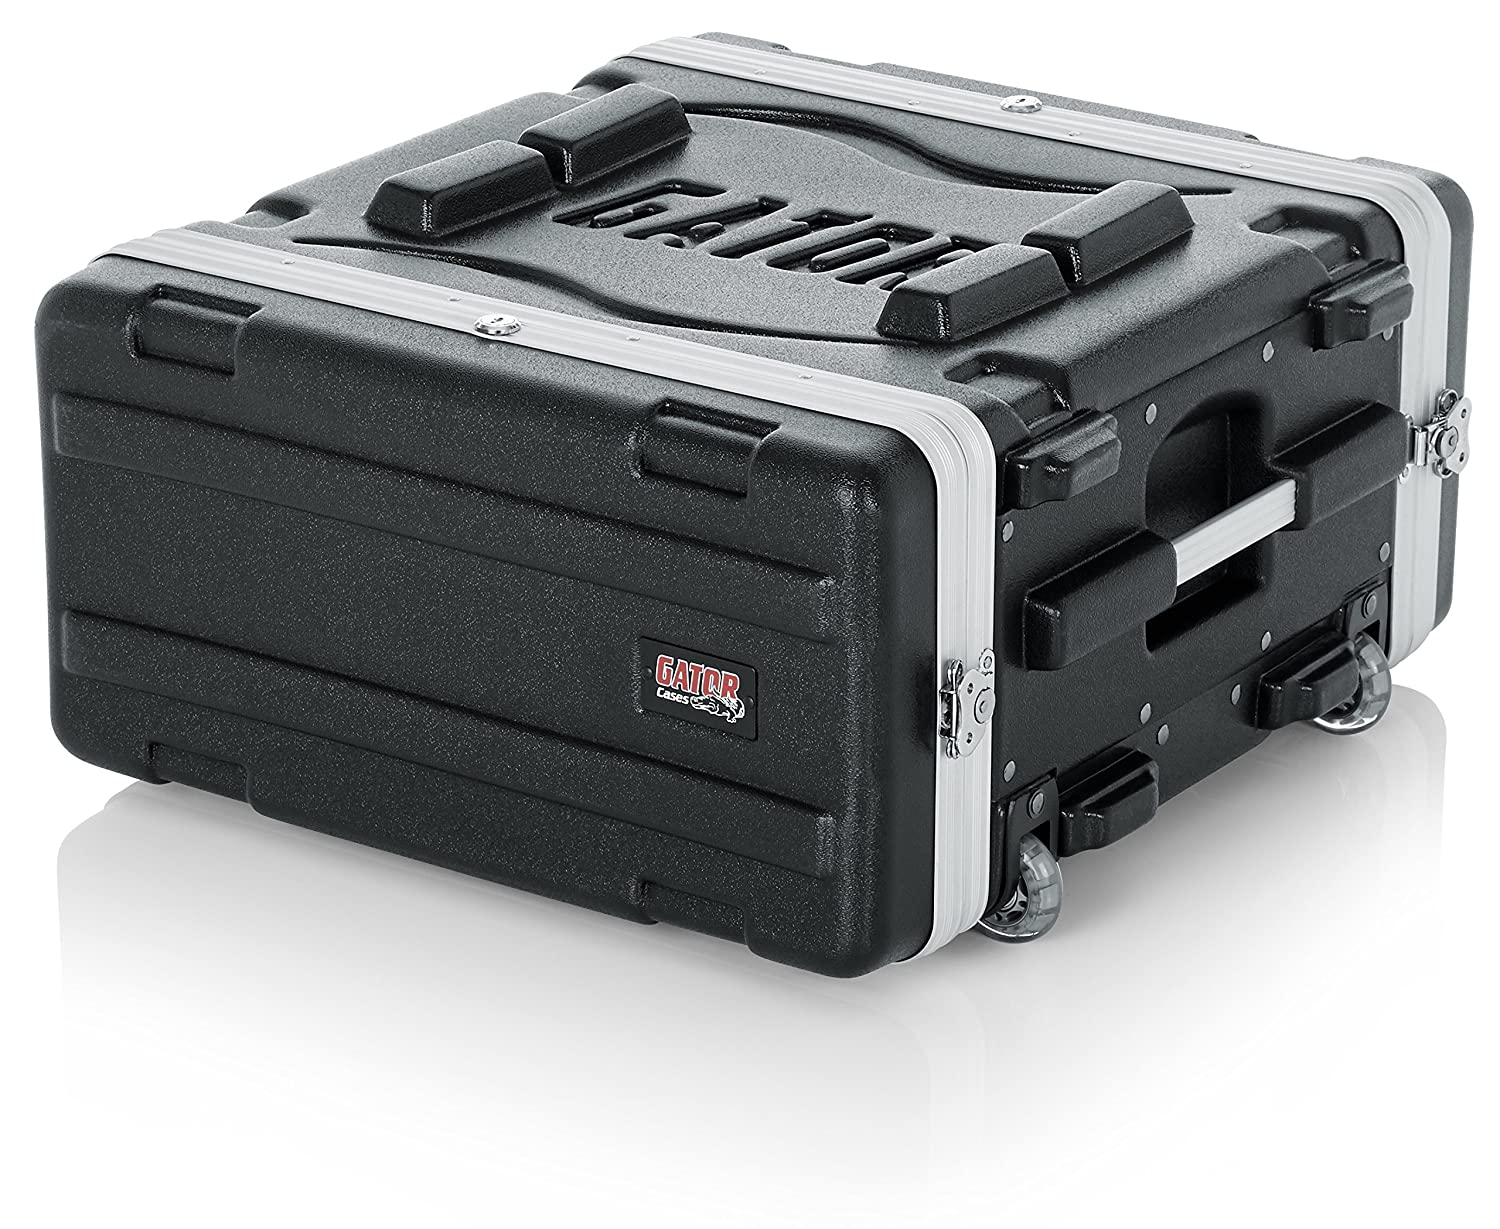 Gator Molded PE 4U 19.25 inch Rack Case with Front/Rear Rails/Pull Handle/Recessed Wheels and Locking GRR4L Portable_Electronics abs